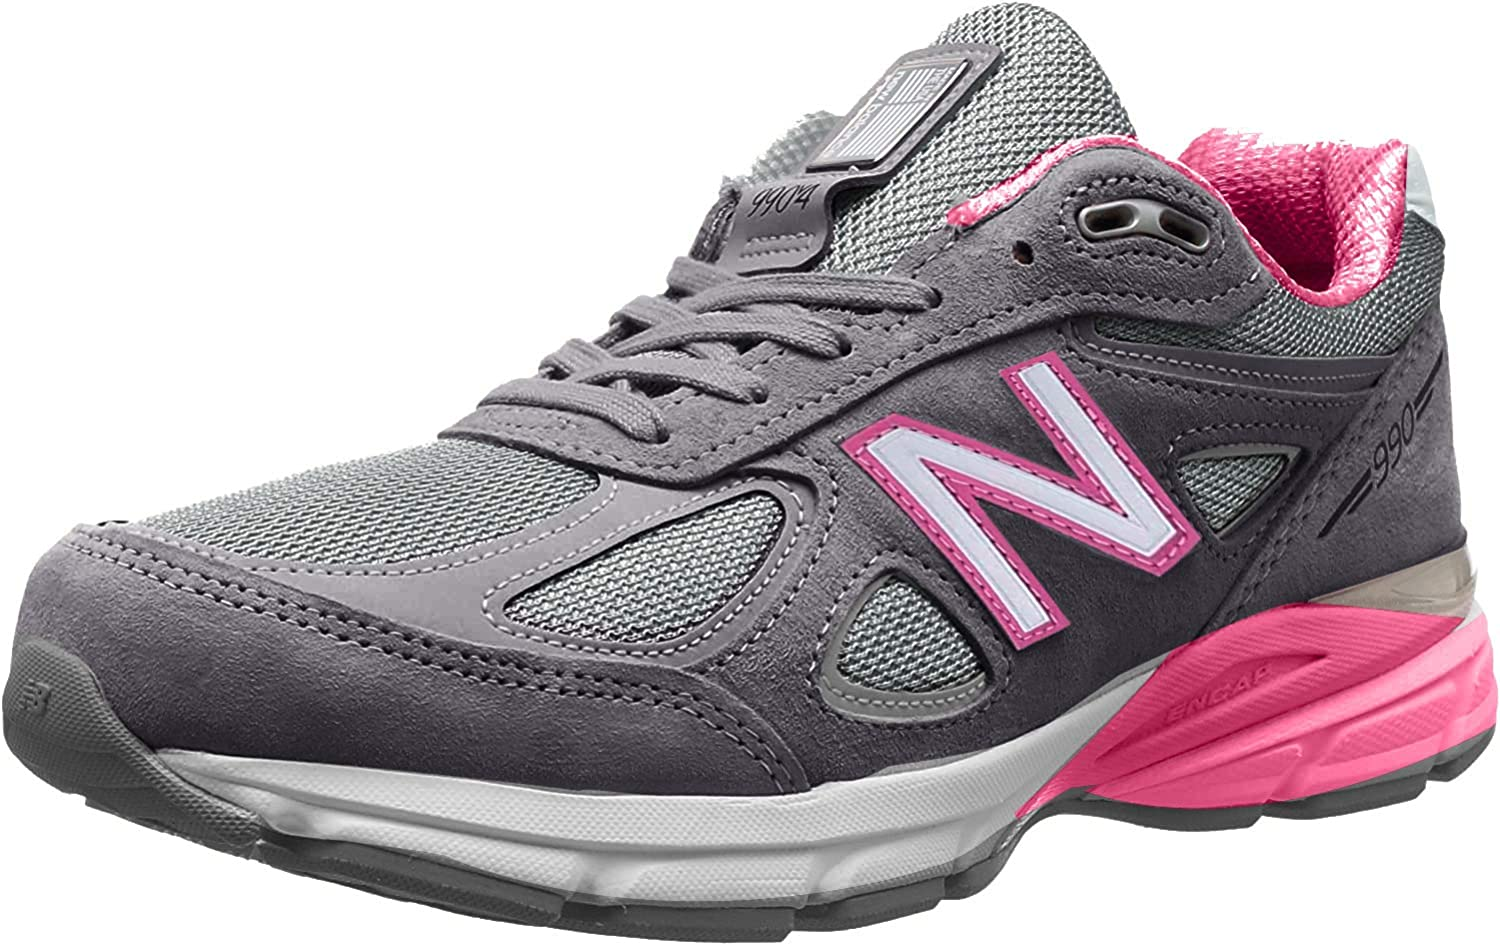 New Balance W990V4 510v4 - Zapatillas de Running con amortiguación, Color Morado: Amazon.es: Zapatos y complementos